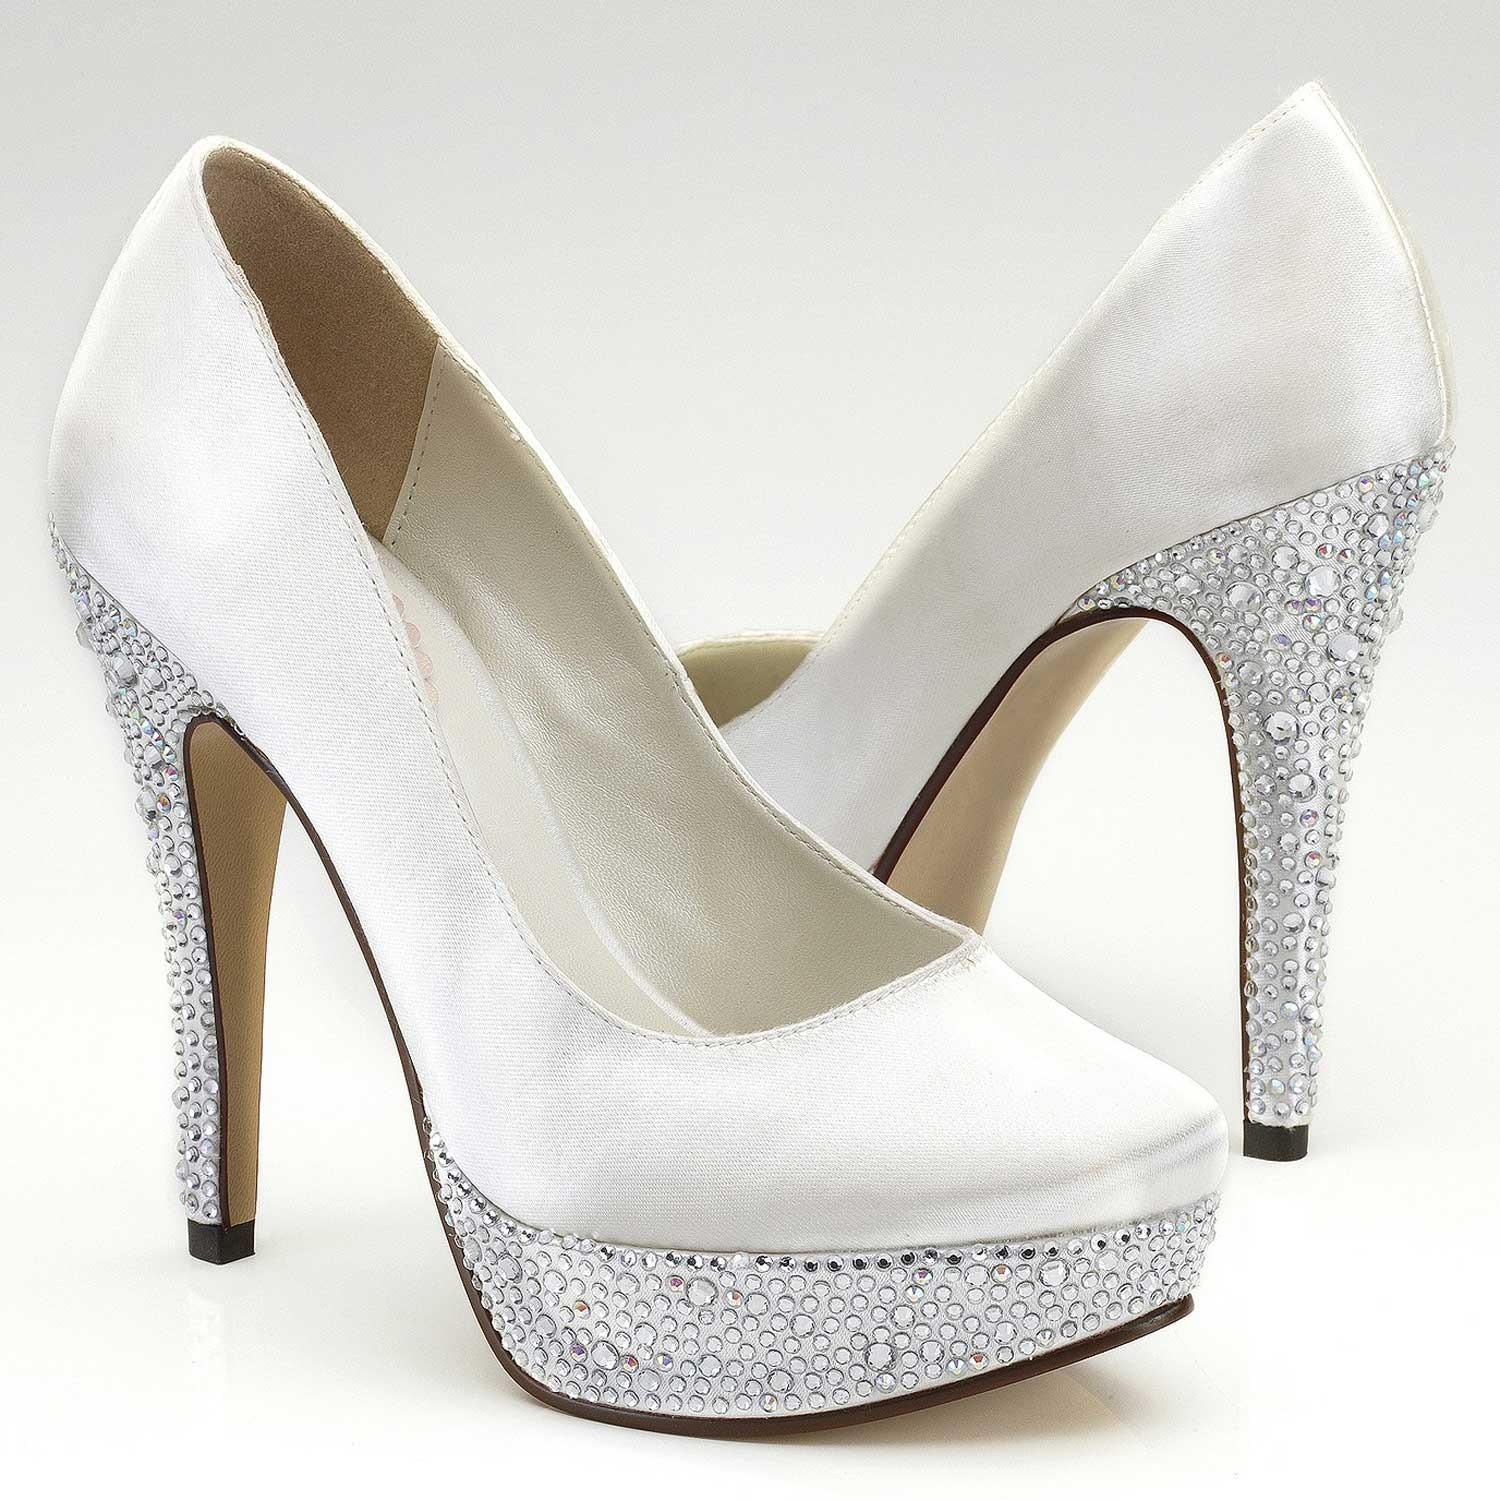 chaussures mariage bedazzle - Chaussure Compense Mariage